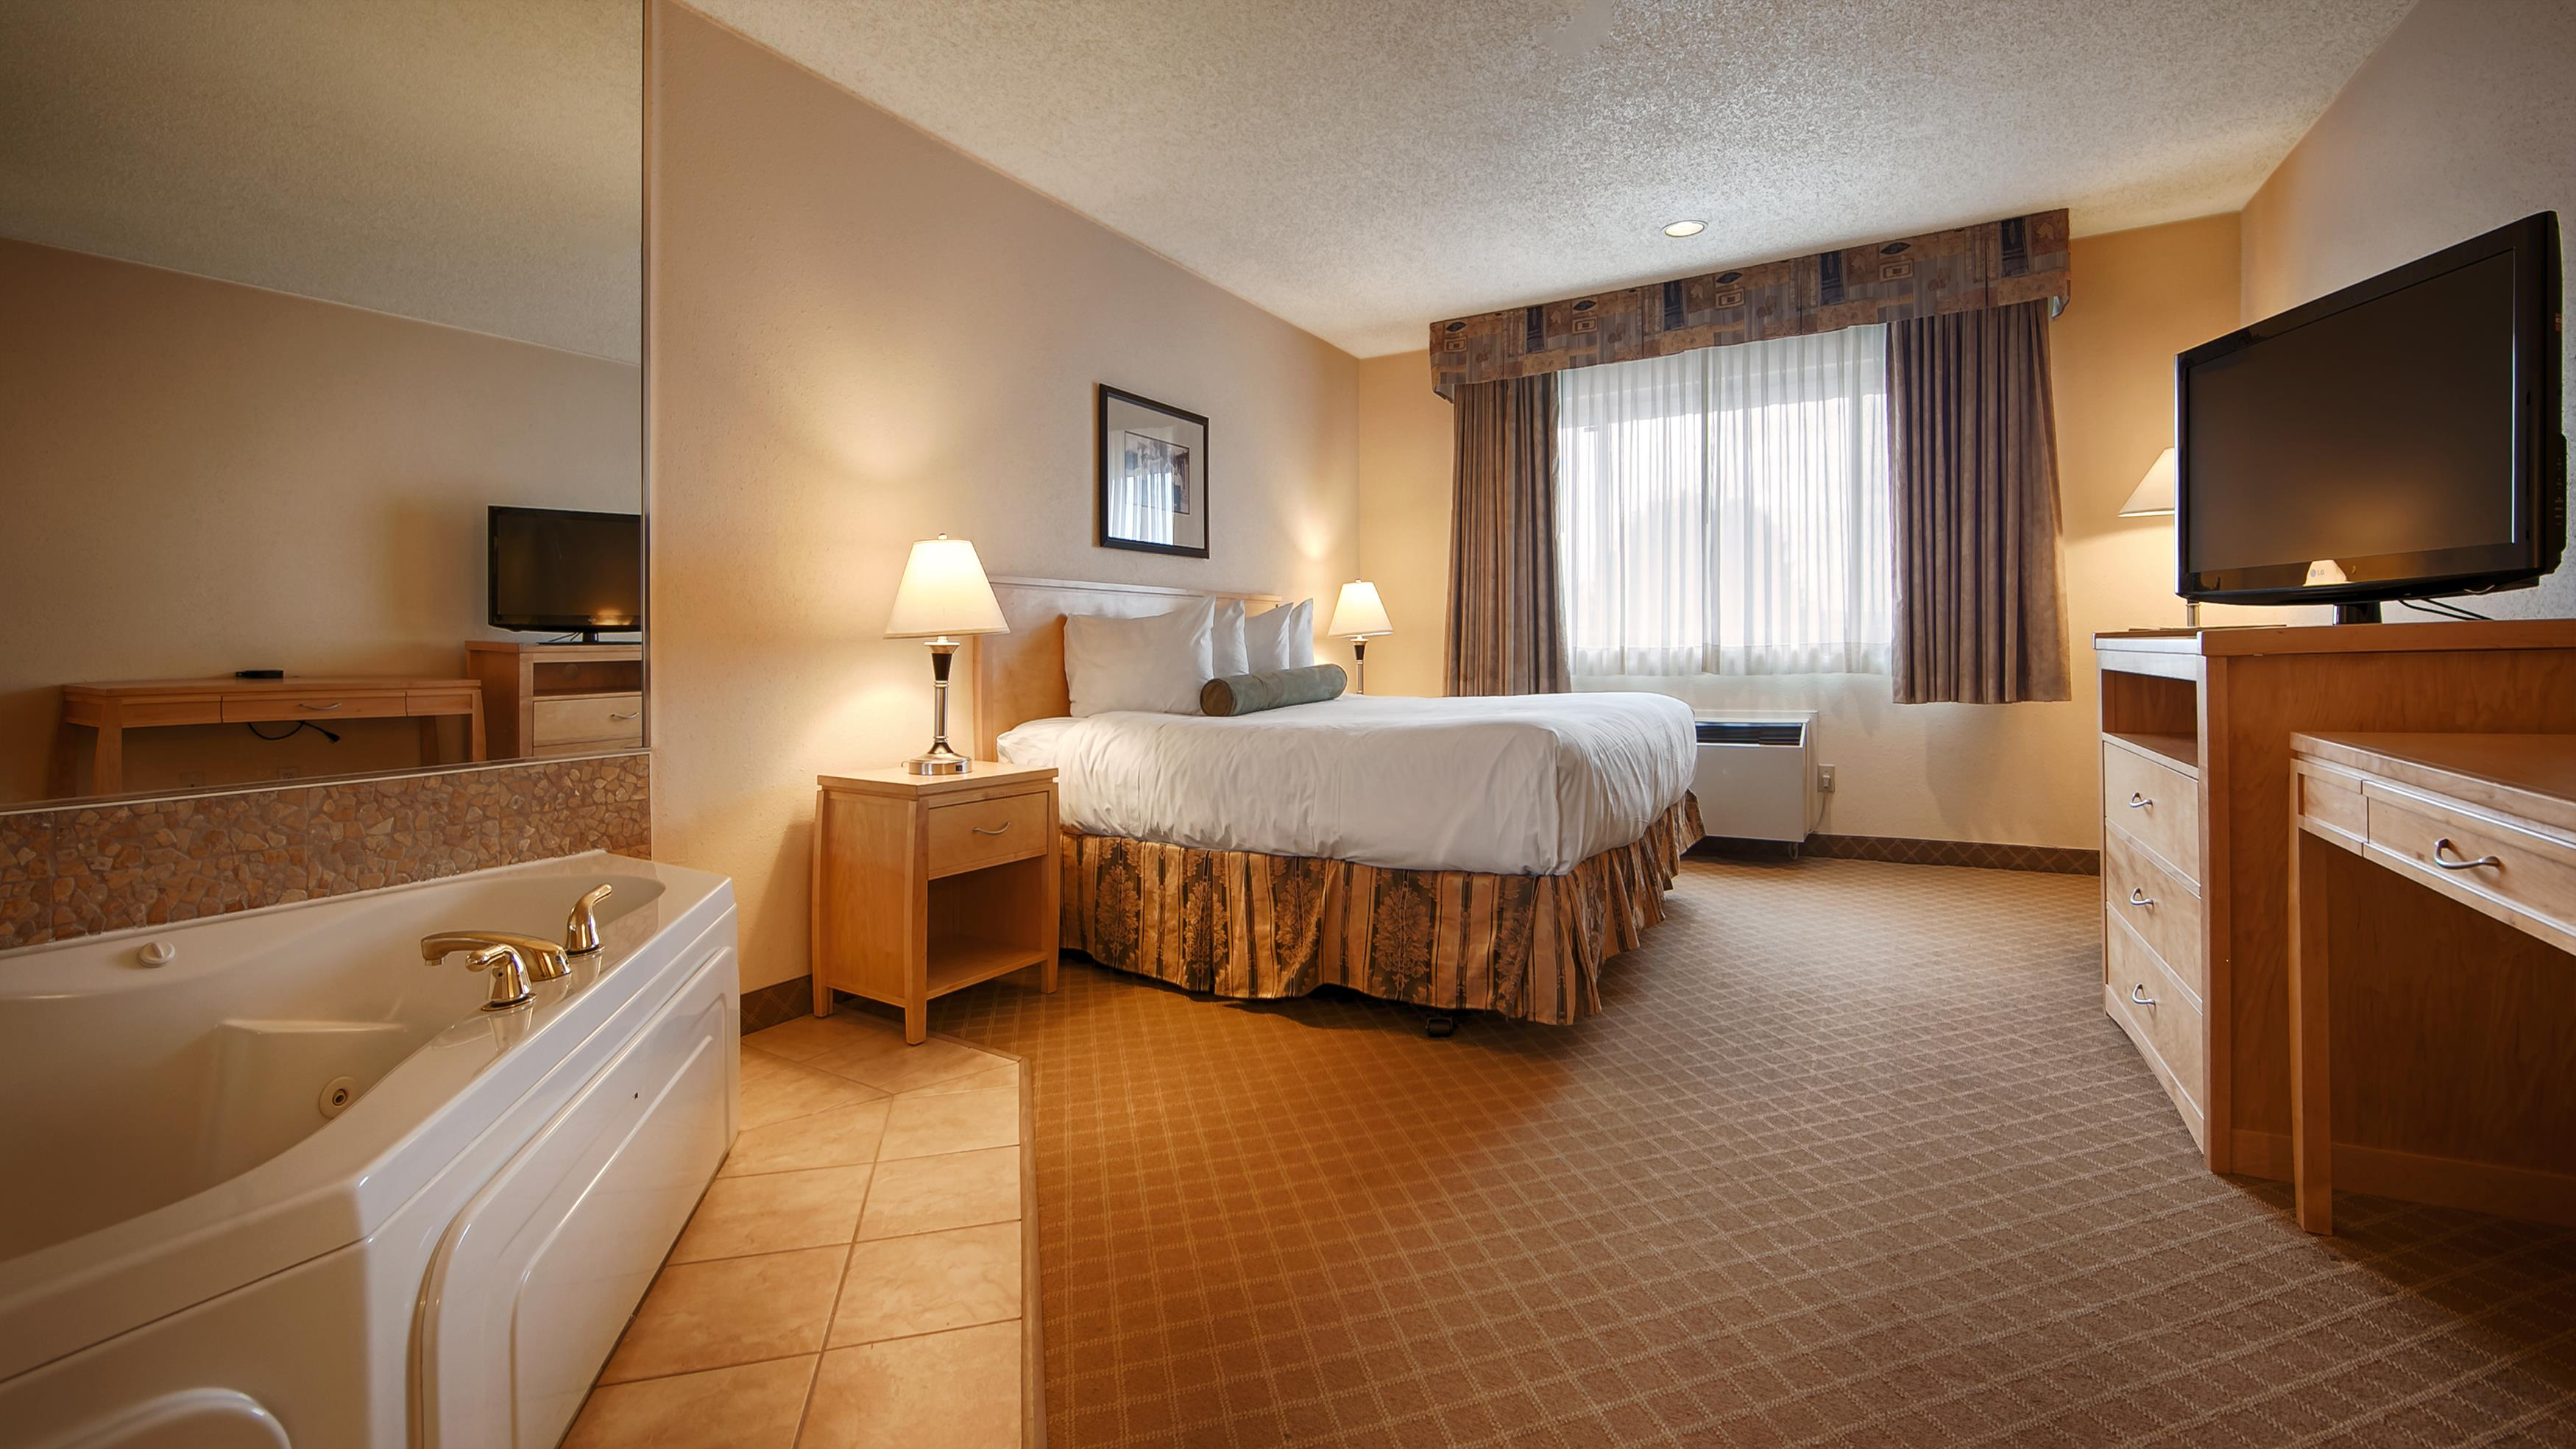 Best Western Chelsea Inn in Coquitlam: King Guest Room with Whirlpool